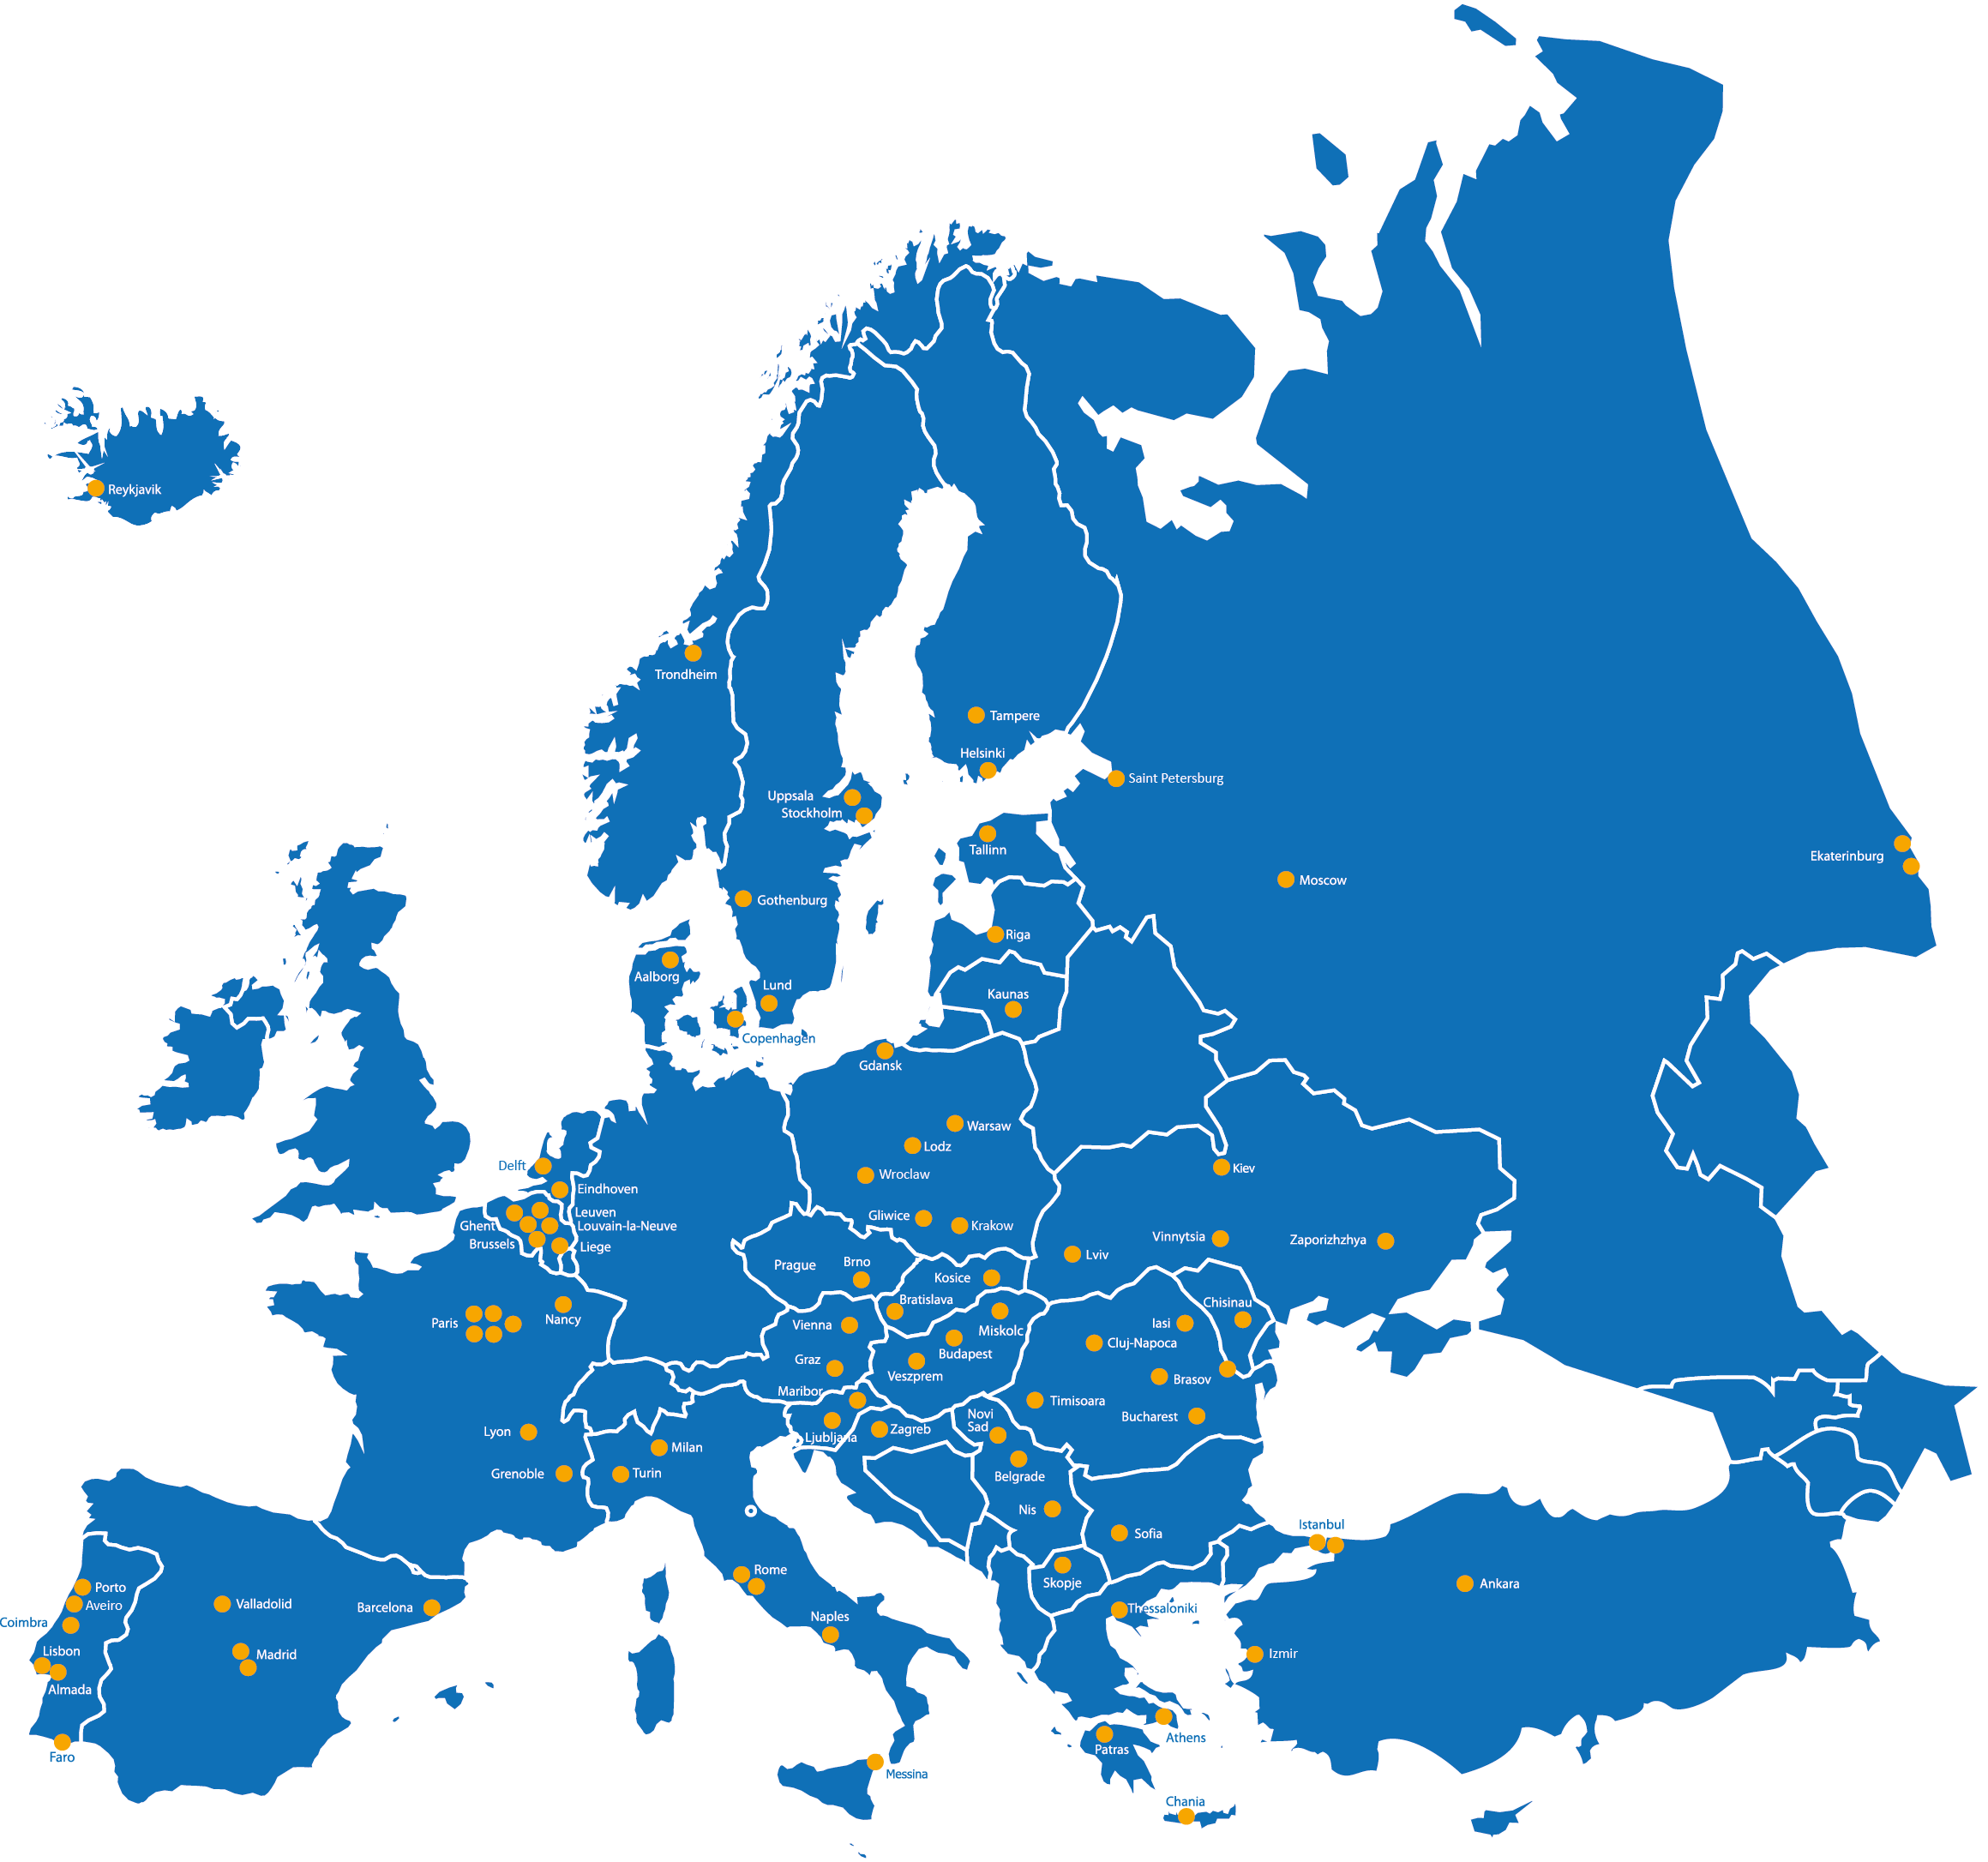 File:BEST Map Of Europe.png.